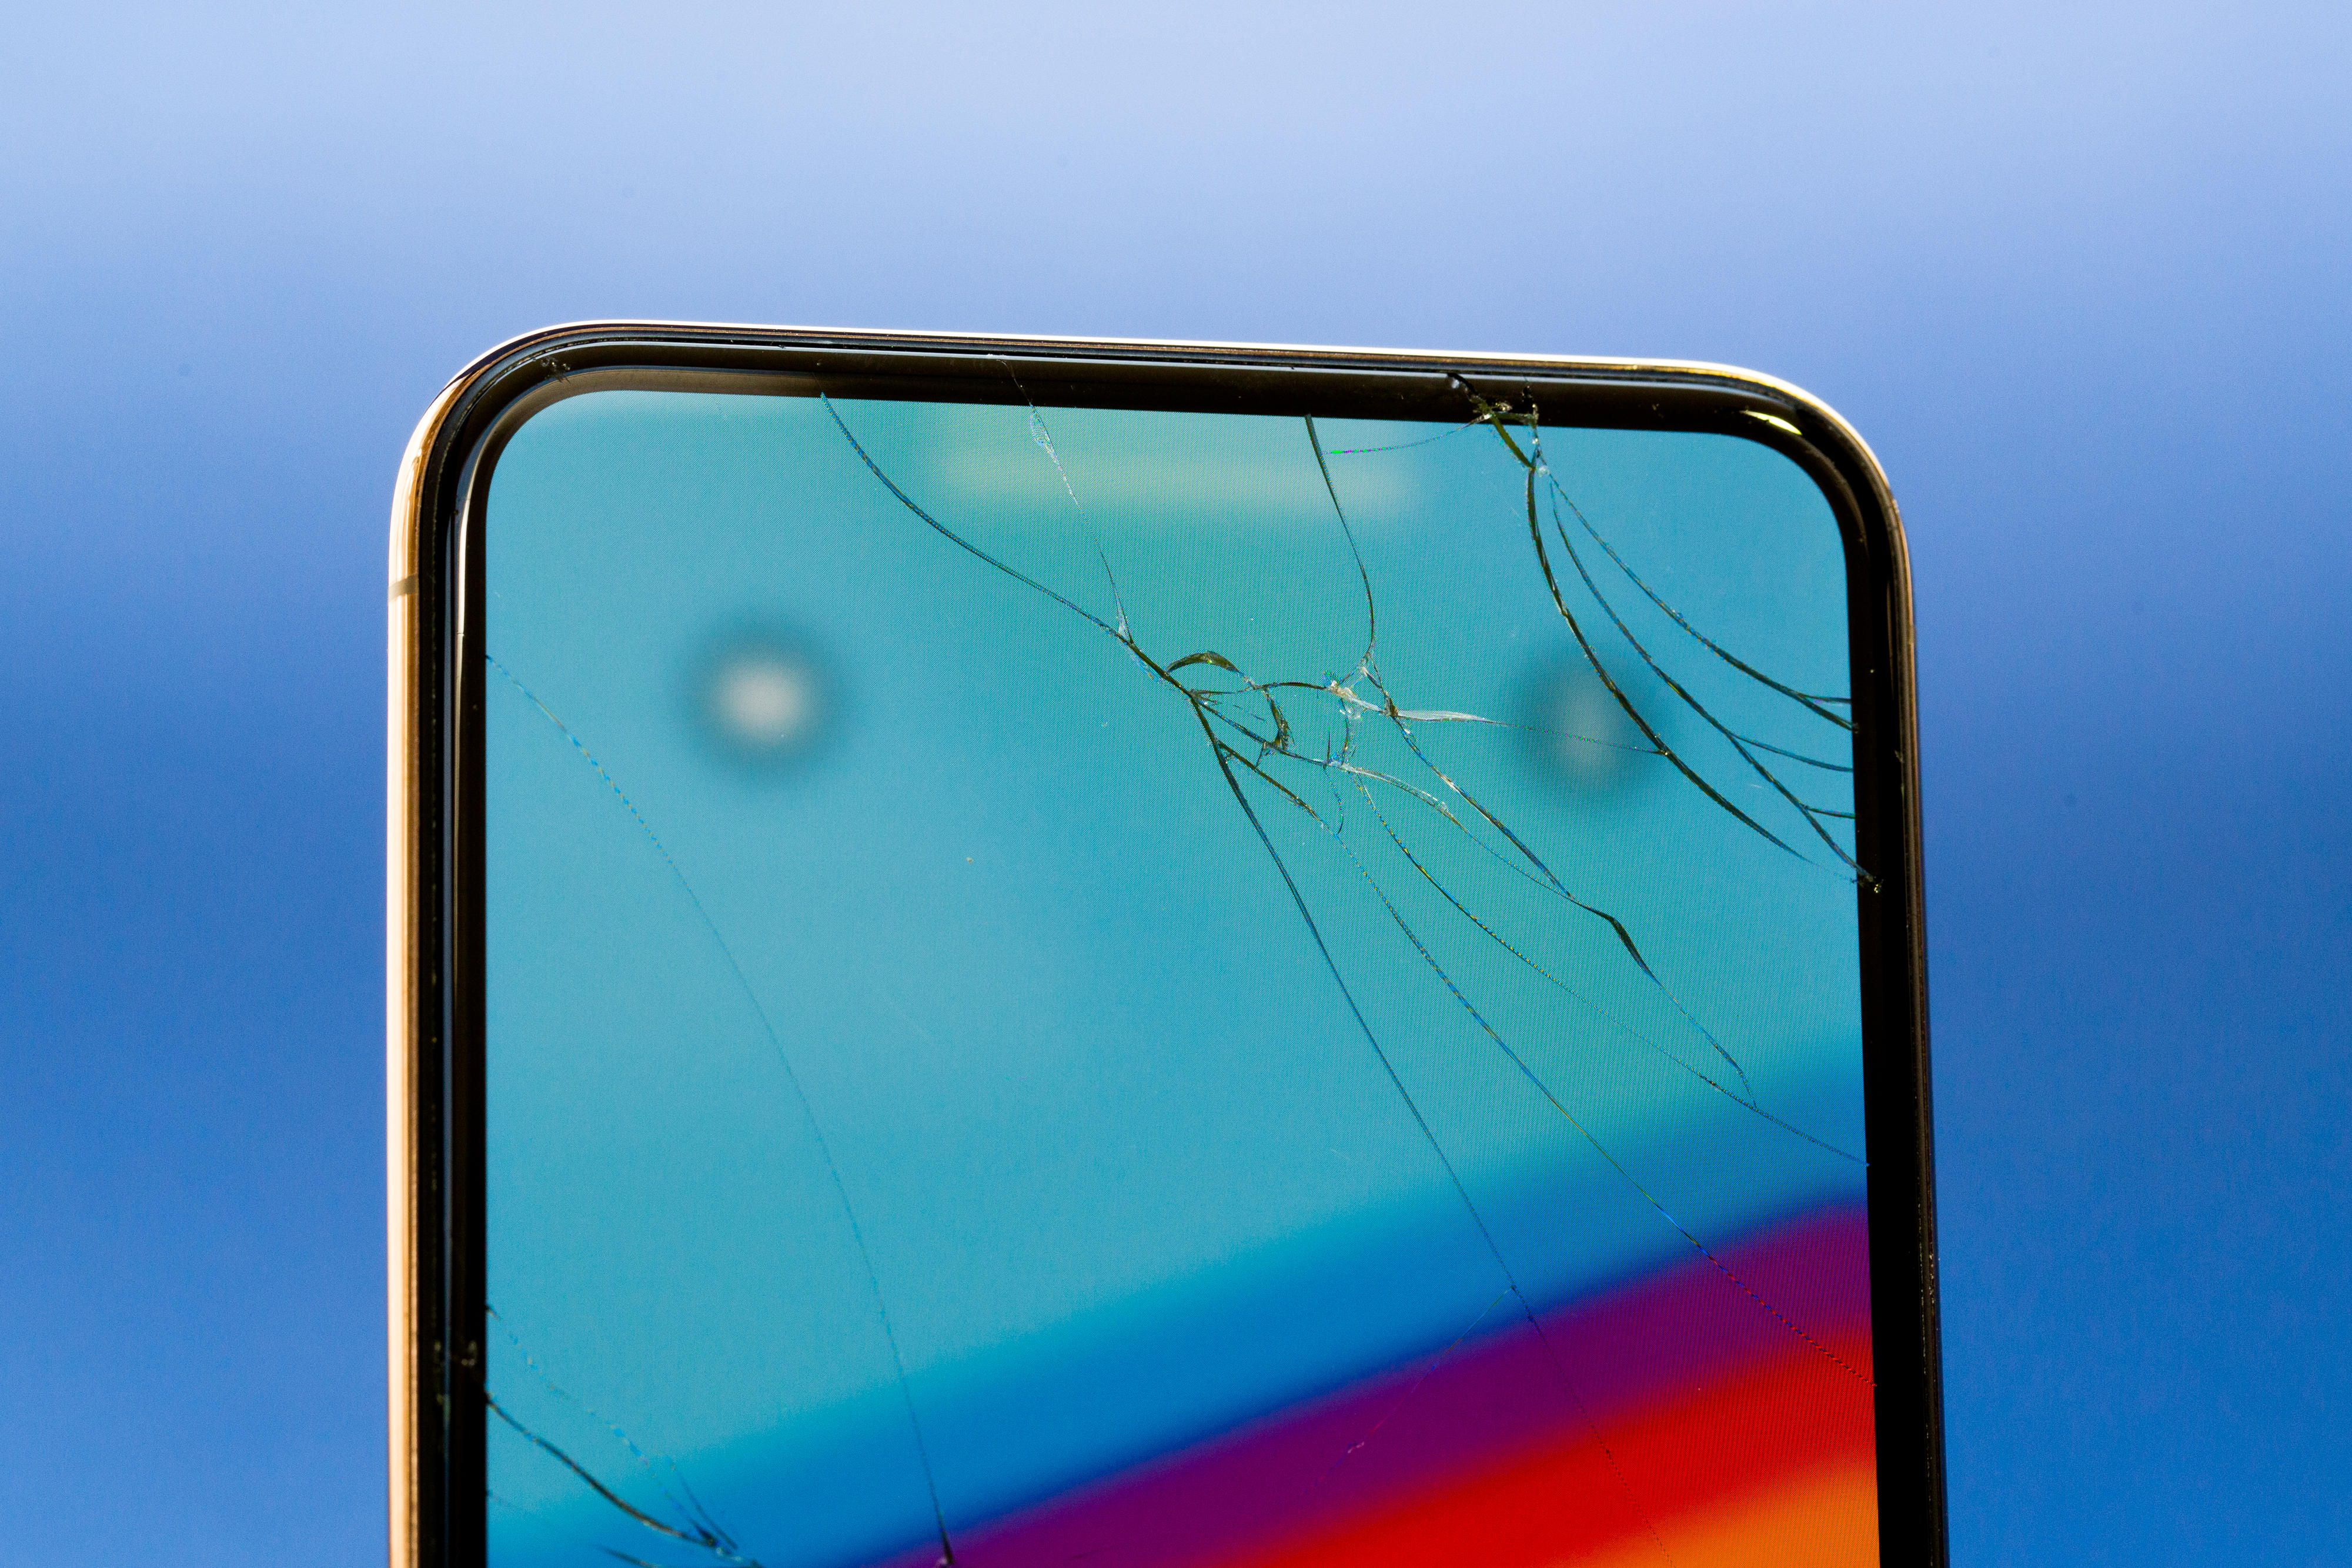 samsung-cracked-screen-note-7.jpg